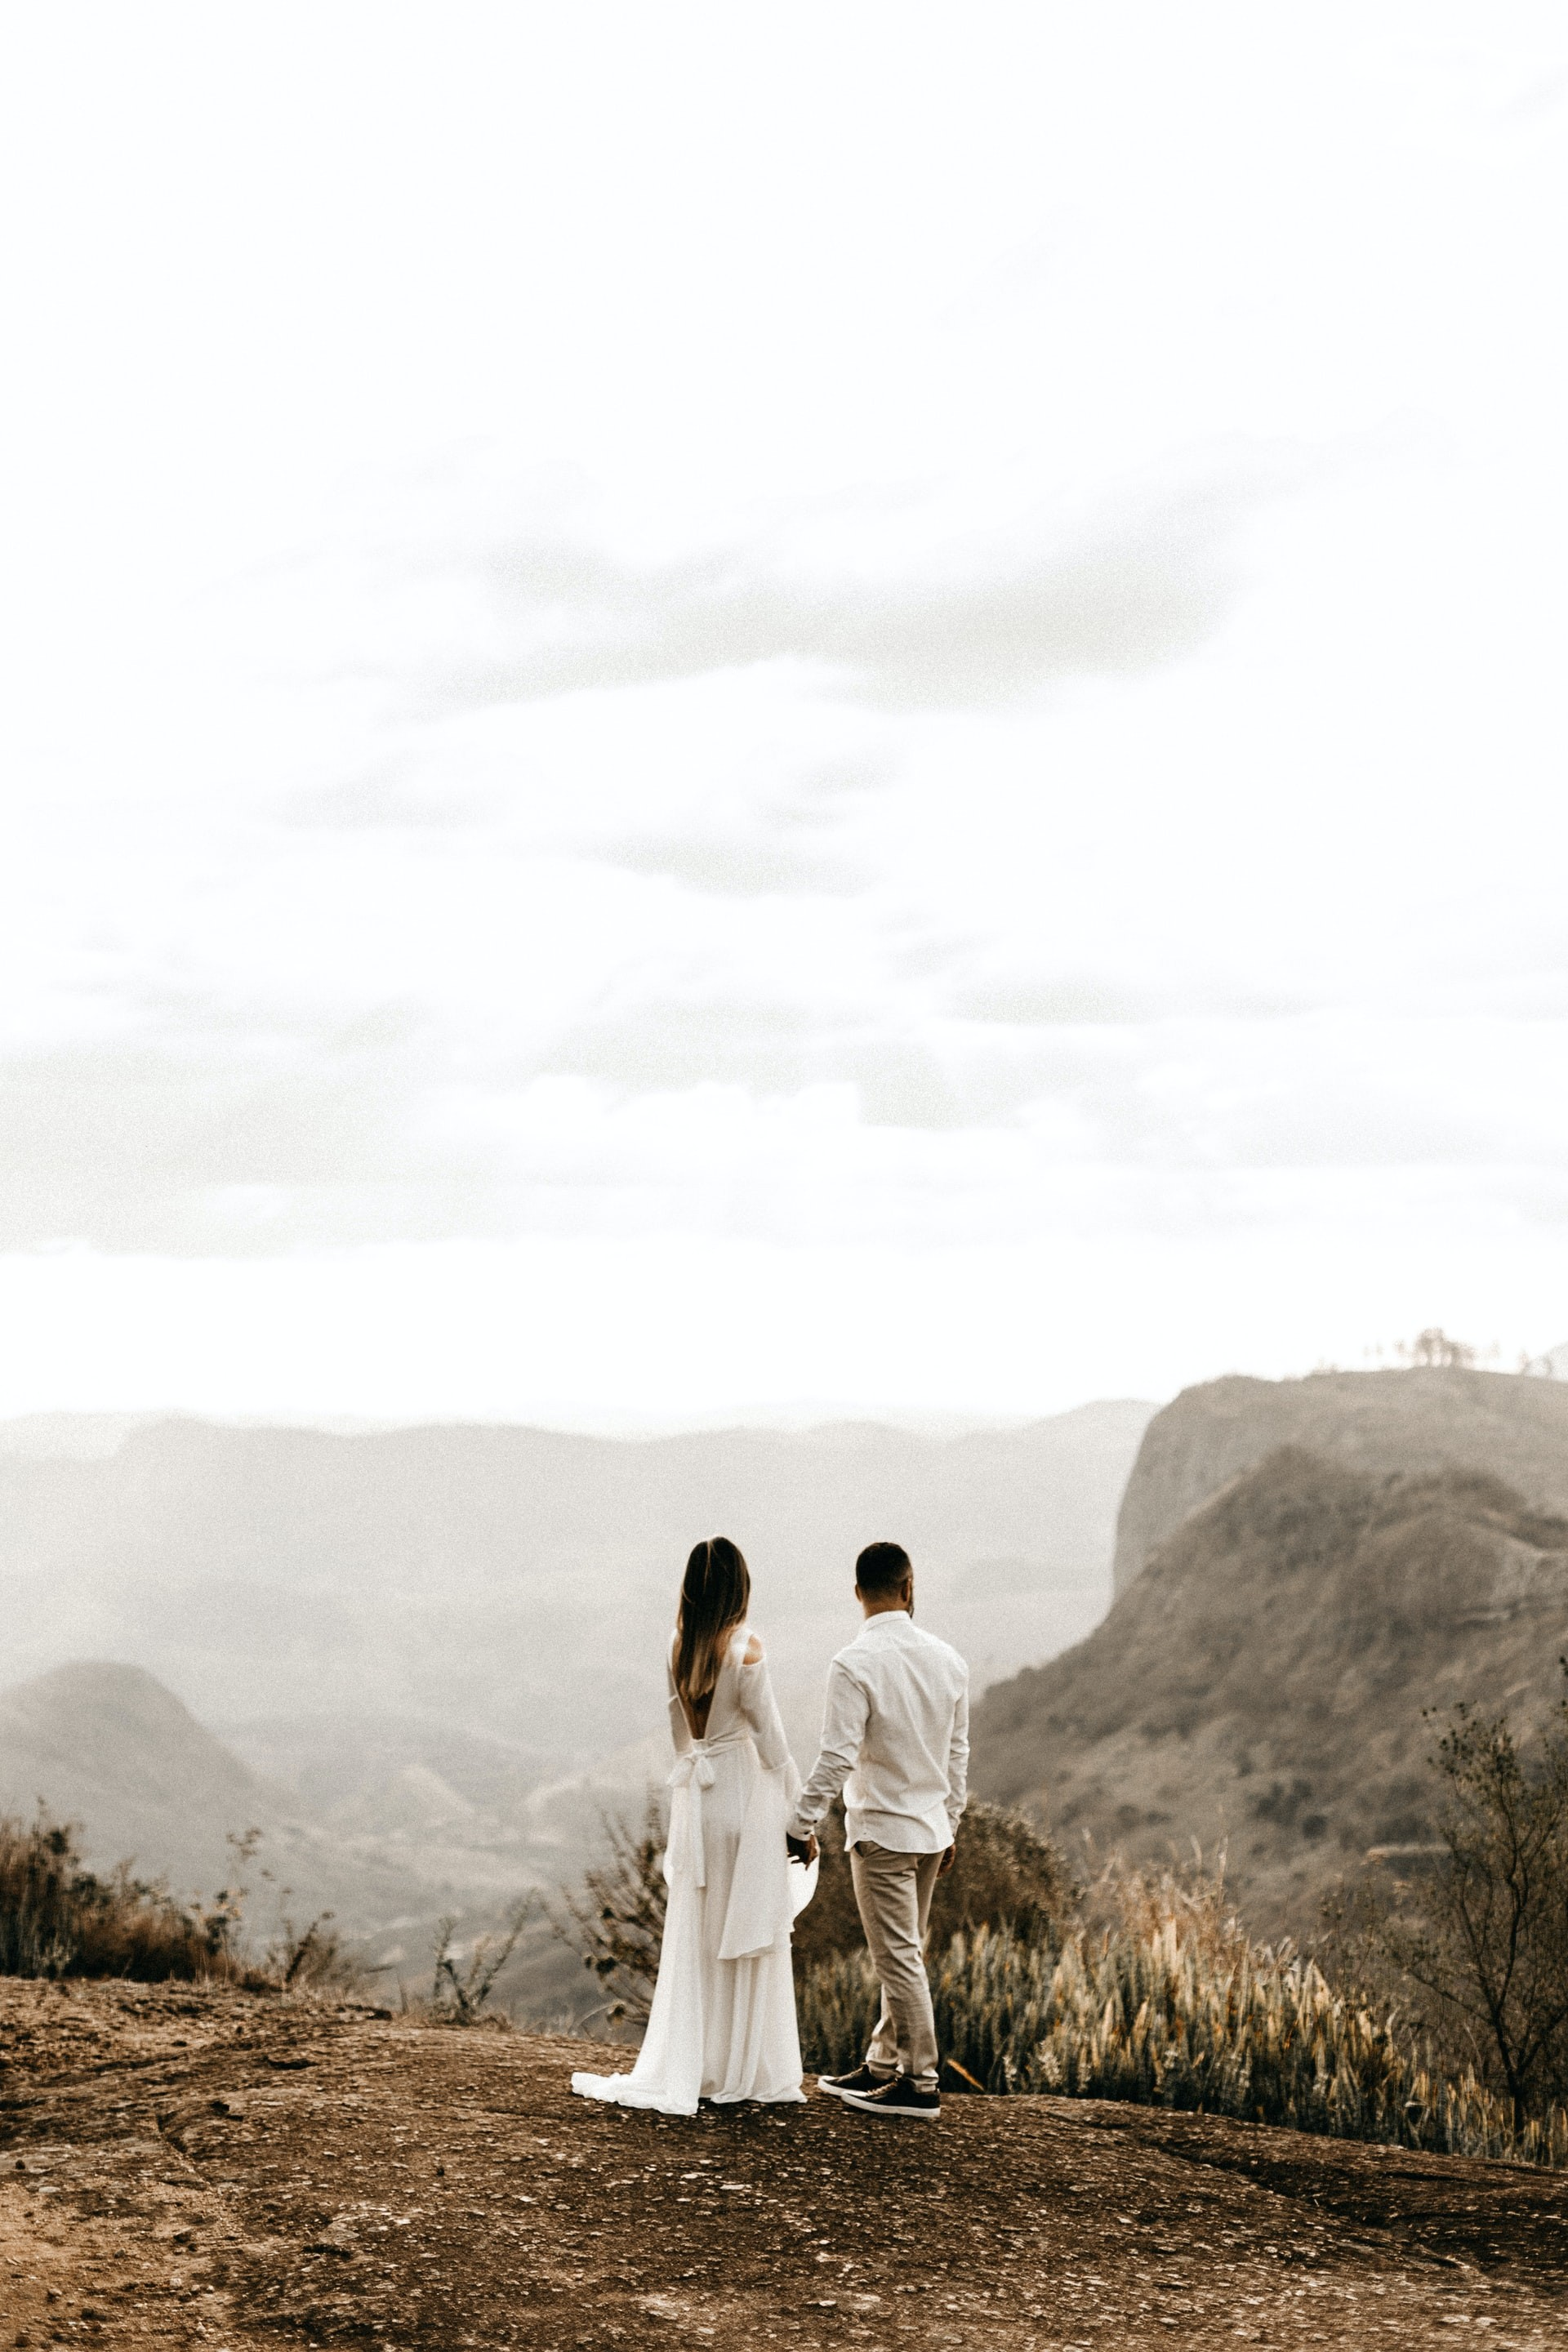 Life Can Be Too Stressful. It's ok to Elope.